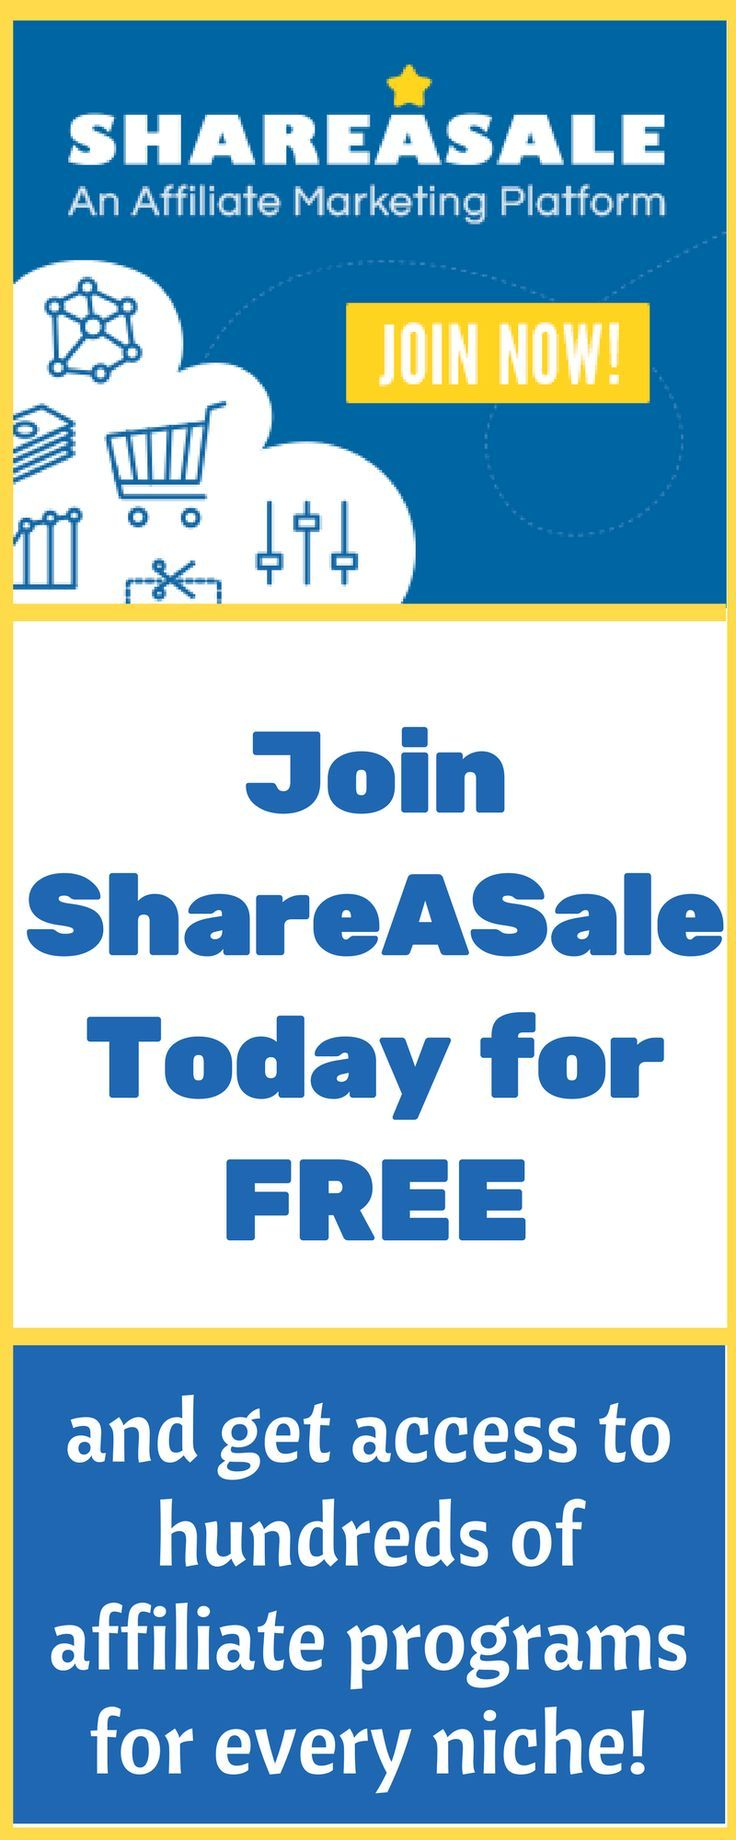 Join ShareASale for free today and access hundreds of